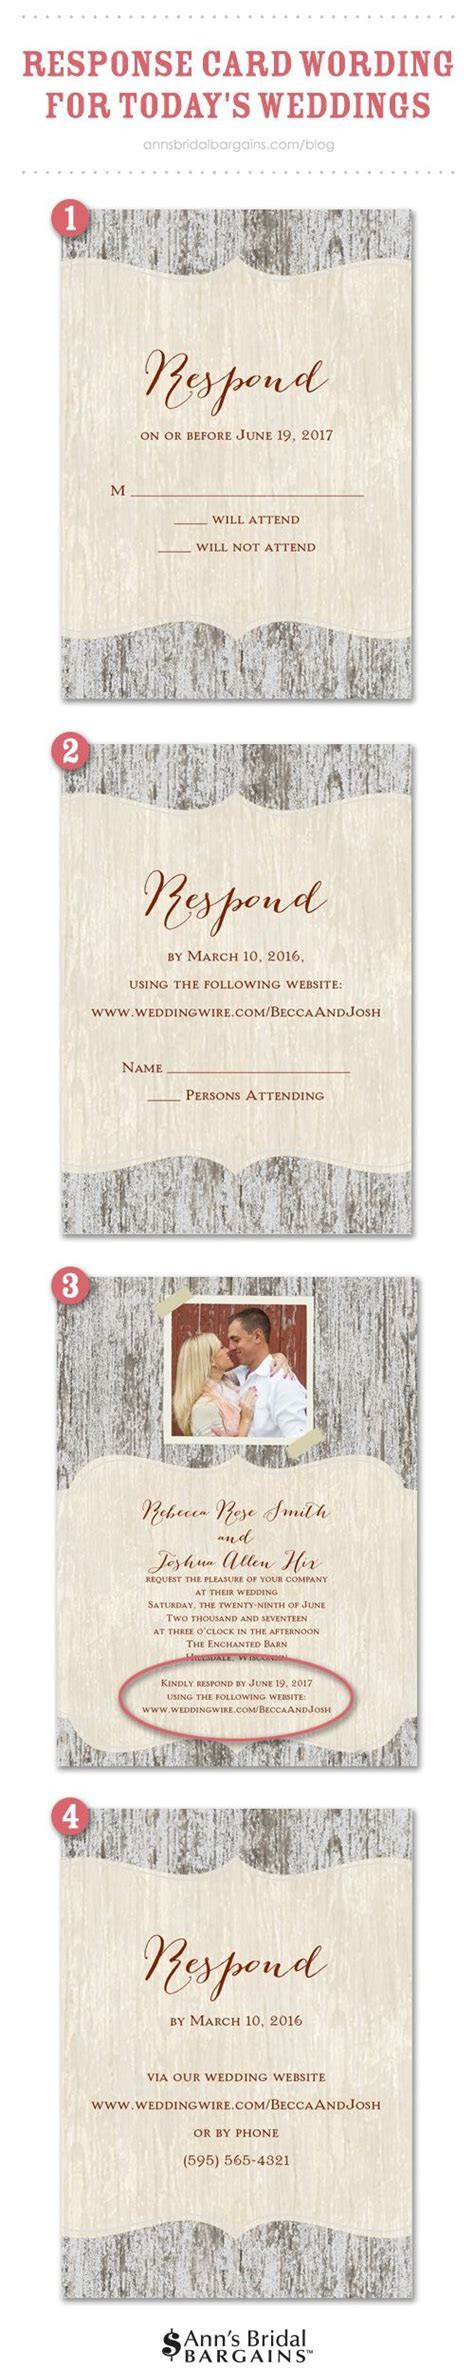 Response Card Wording Examples for Online RSVPs   Wedding